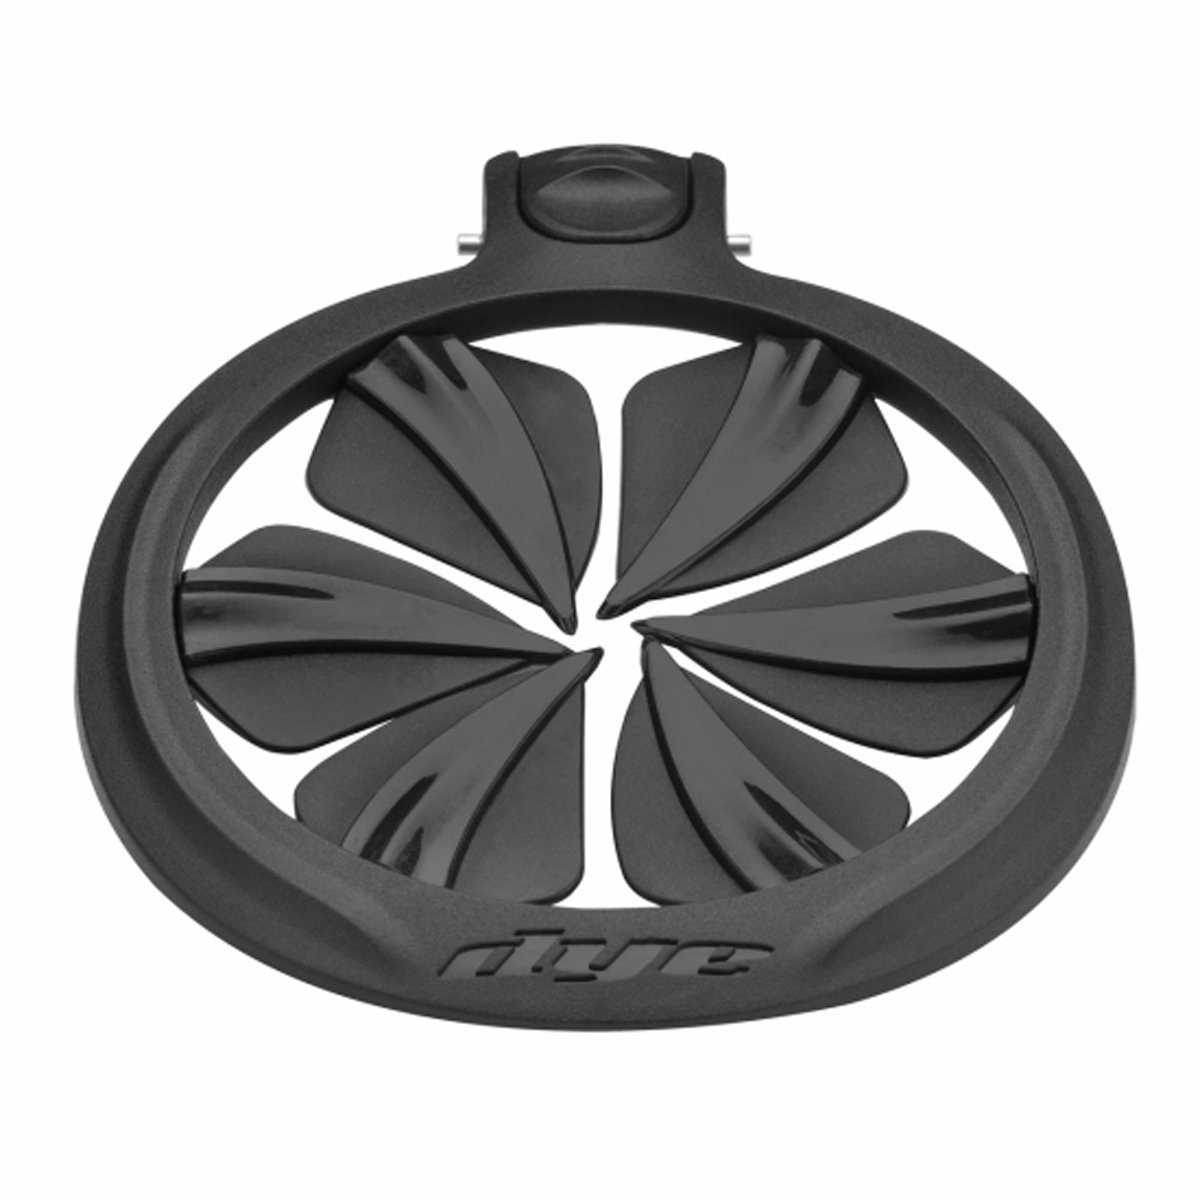 Dye Paintball Rotor R2 Quick Feed Speed Feed for R-2 Rotor - Black & Grey